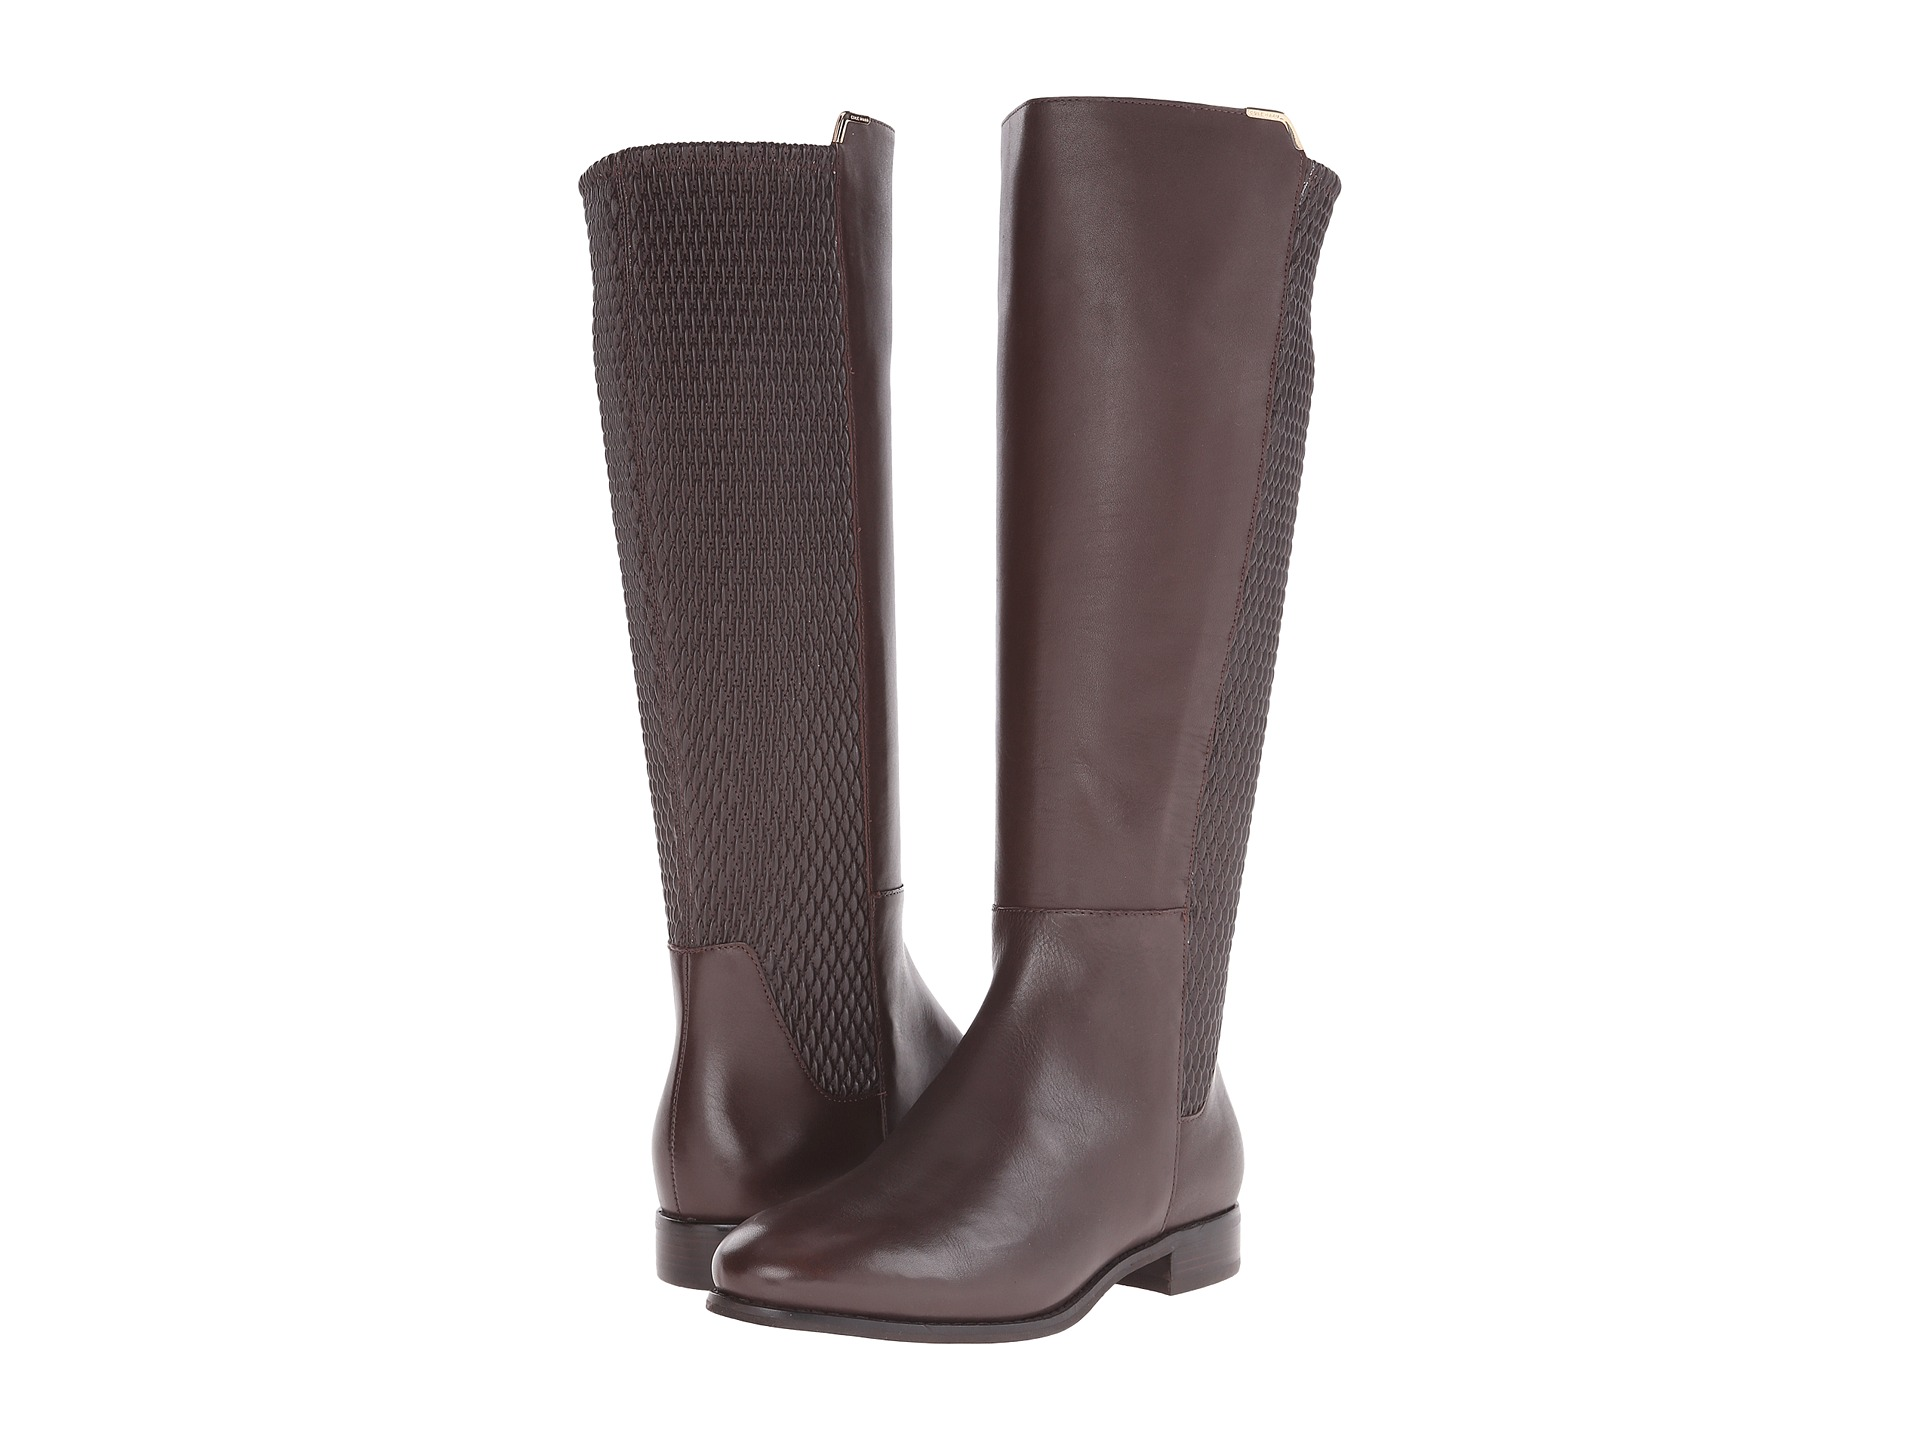 Cole Haan Rockland Boot - Zappos.com Free Shipping BOTH Ways